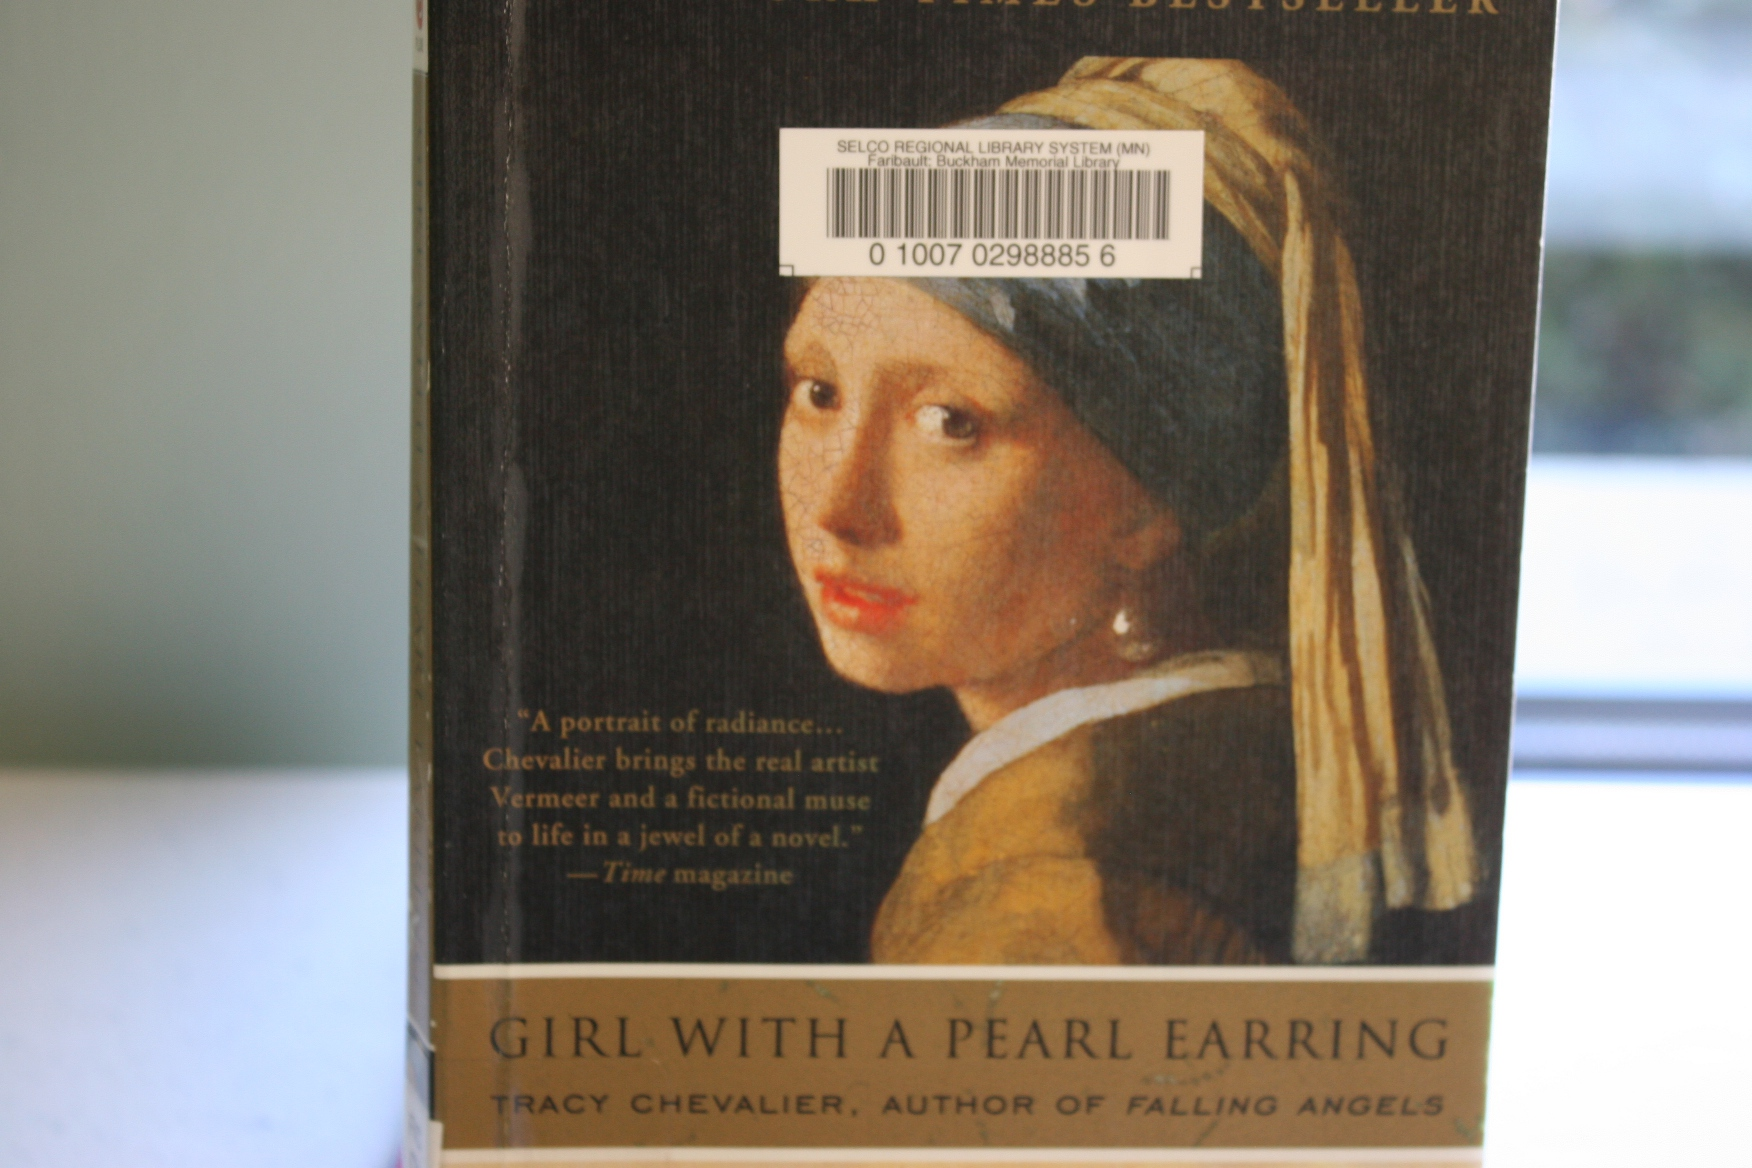 books girl a pearl earring book minnesota prairie roots food art at the library books 7 girl a pearl earring book